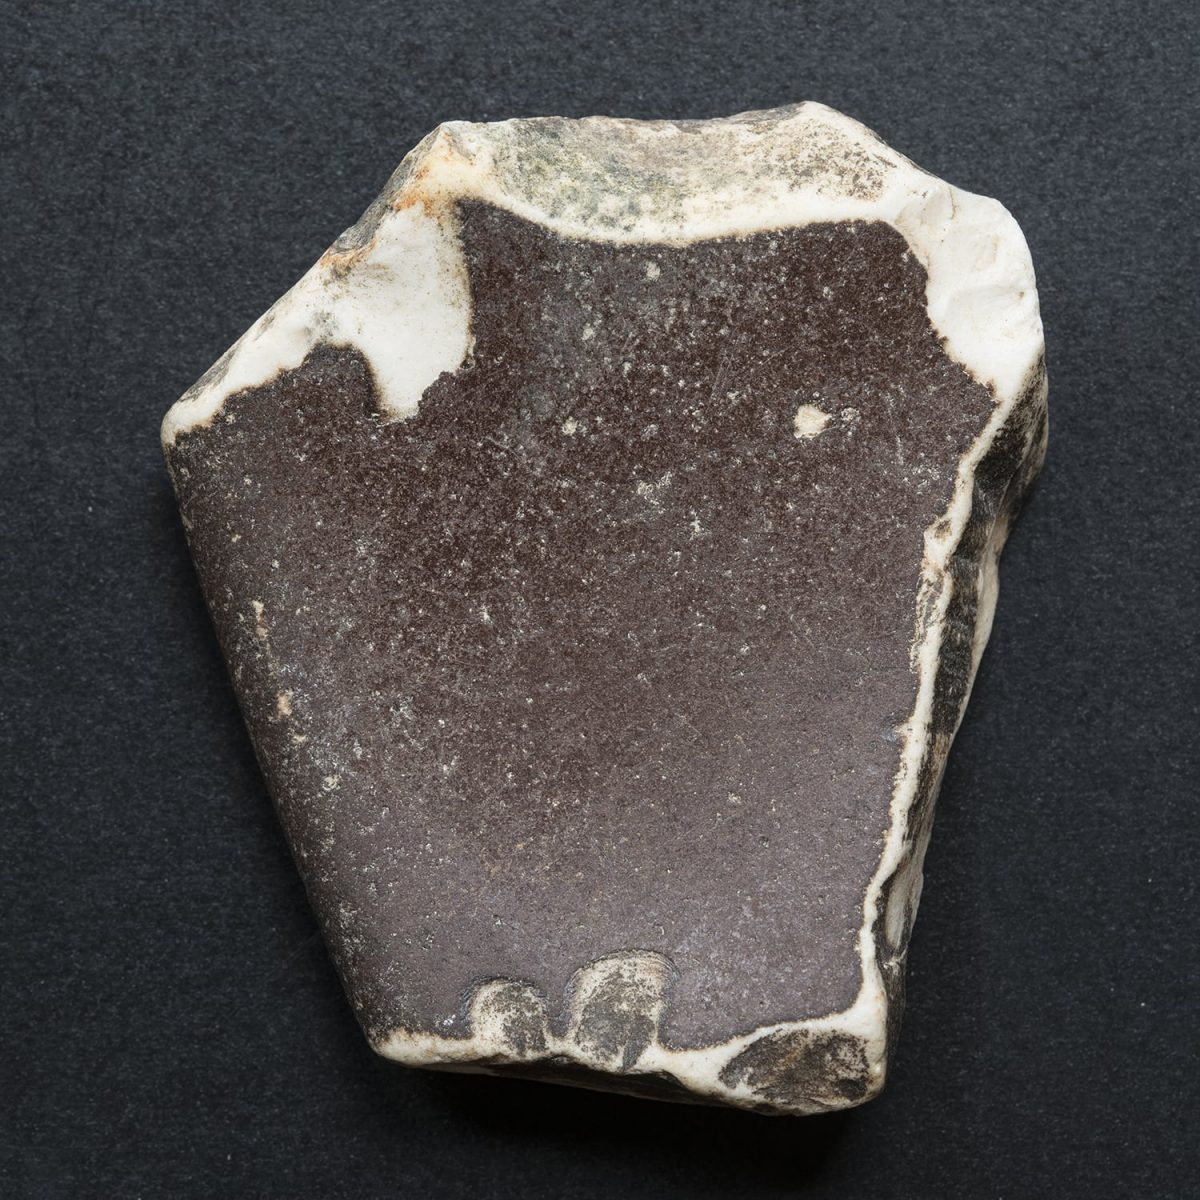 Can you help identify this object? Is it a pottery fragment or just a piece of smooth stone?